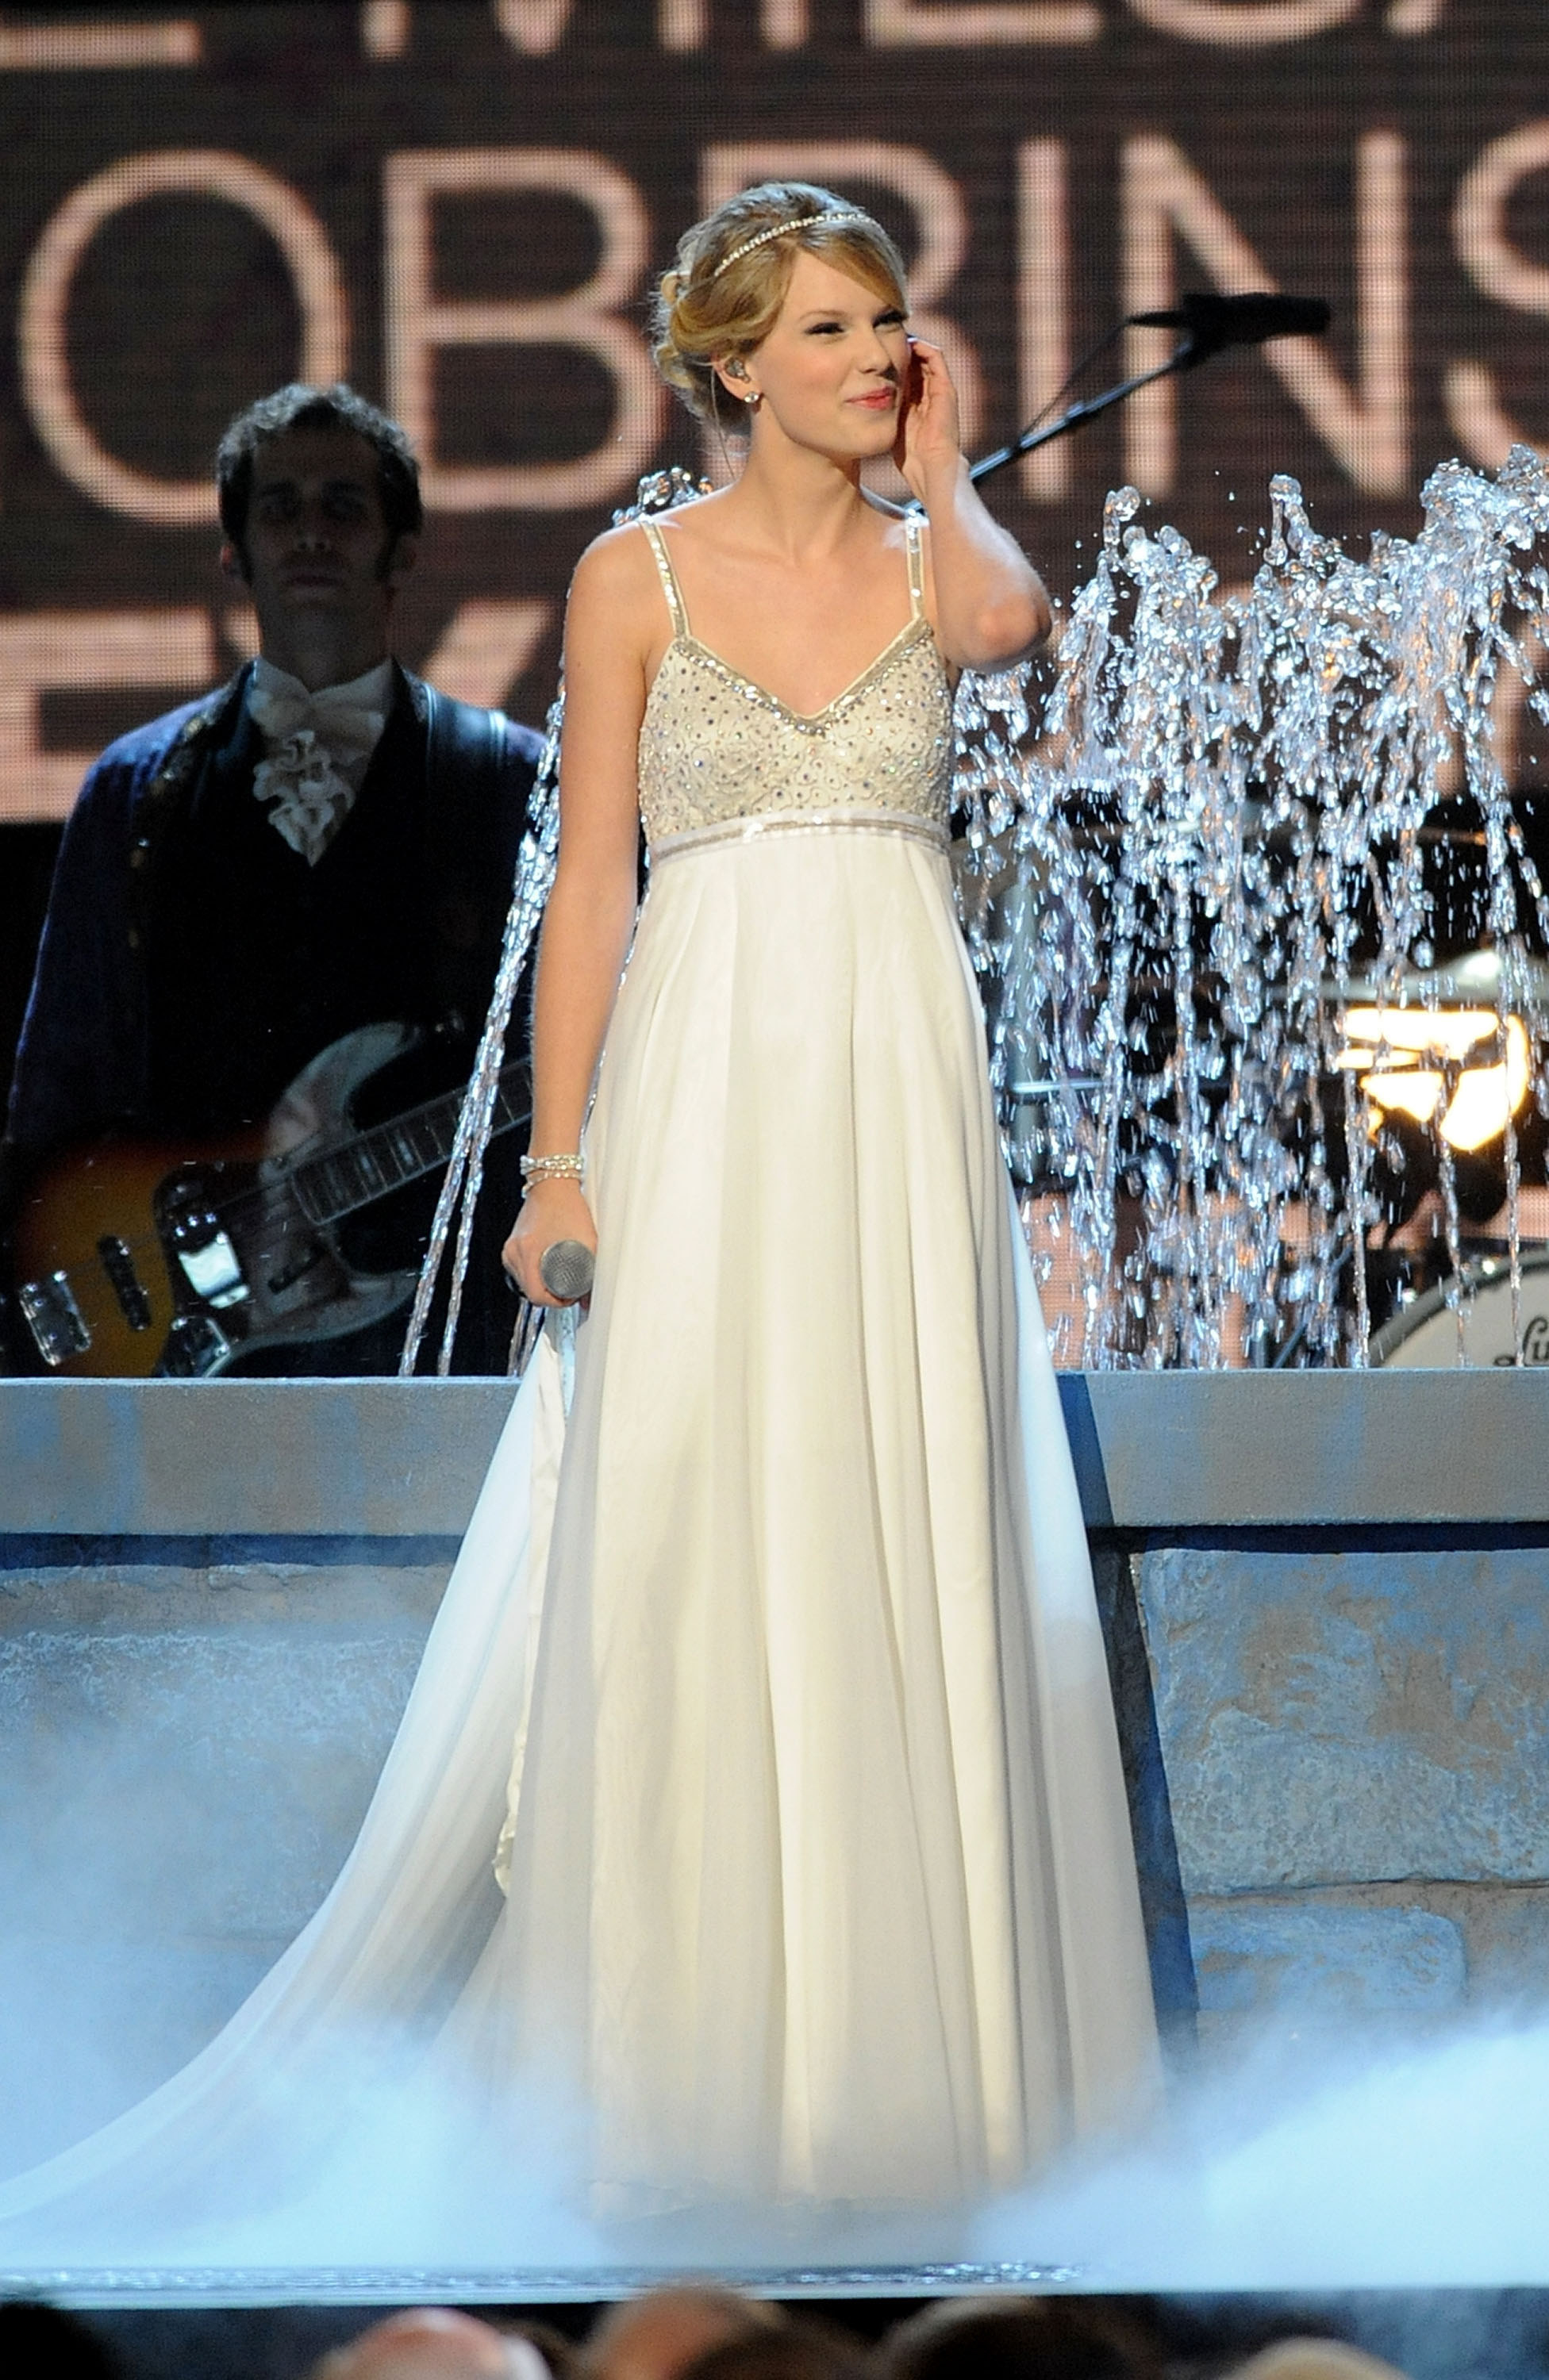 Taylor Swift in a long white gown performing Love Story